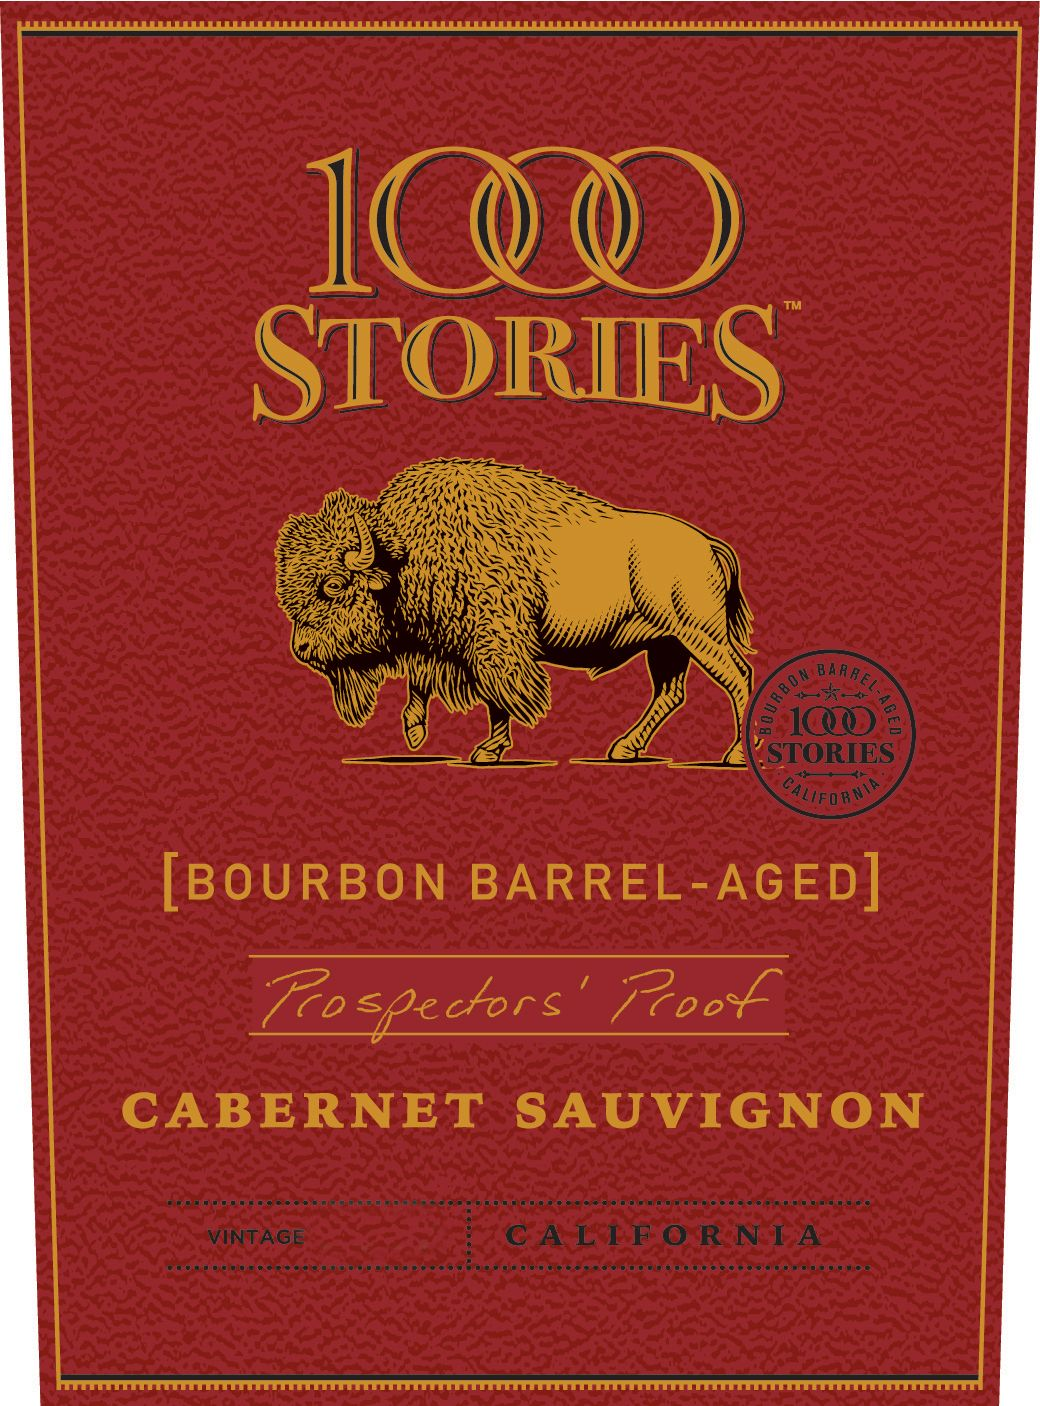 1000 Stories Bourbon Barrel Aged Prospectors' Proof Cabernet Sauvignon 2016  Front Label